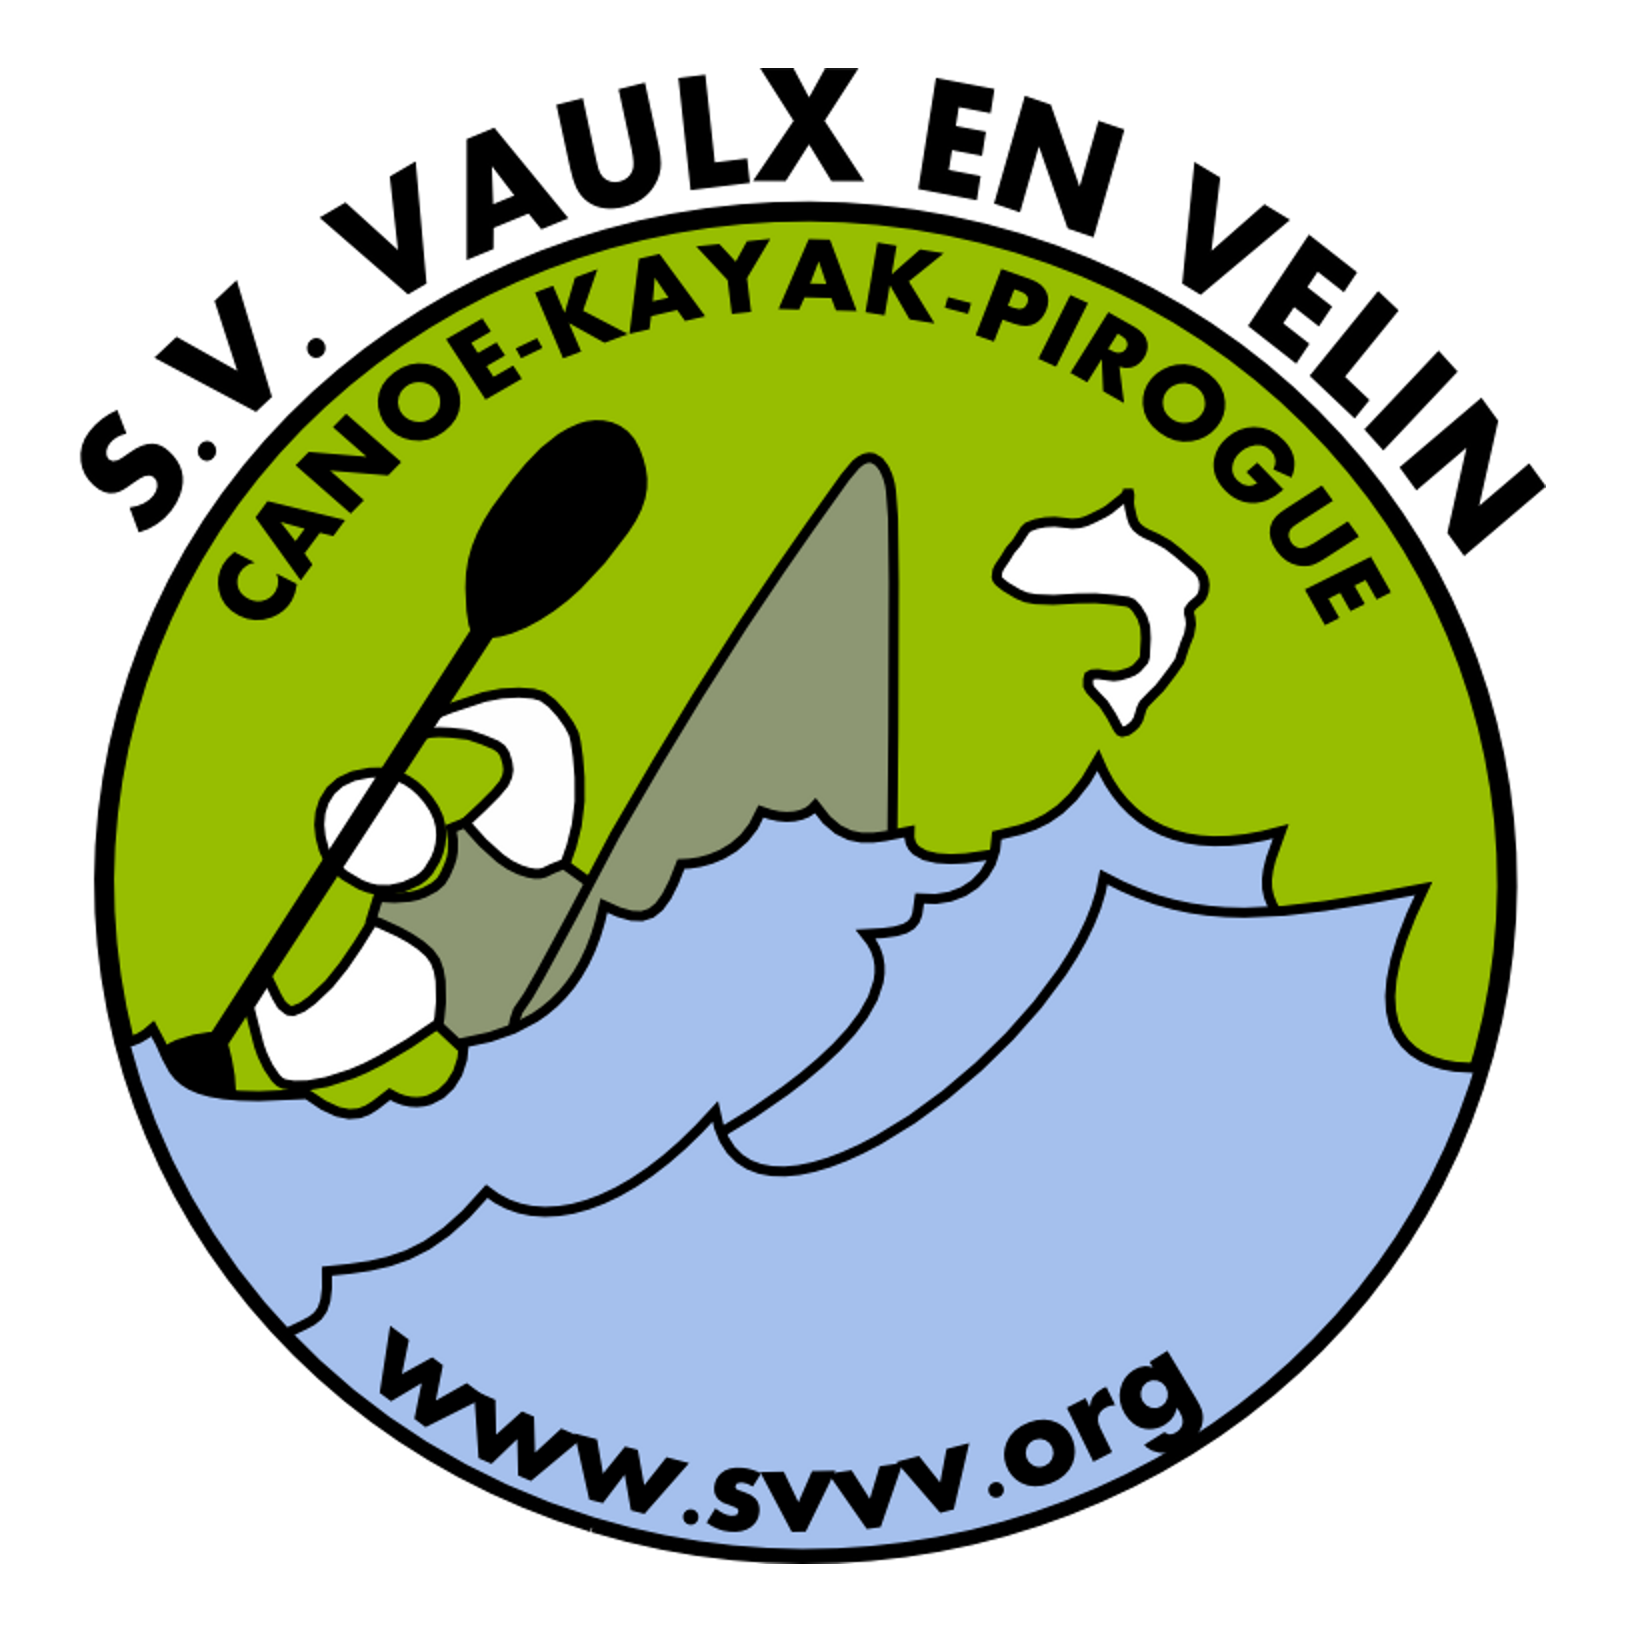 Association S.V. Vaulx en Velin Canoë-kayak Pirogue